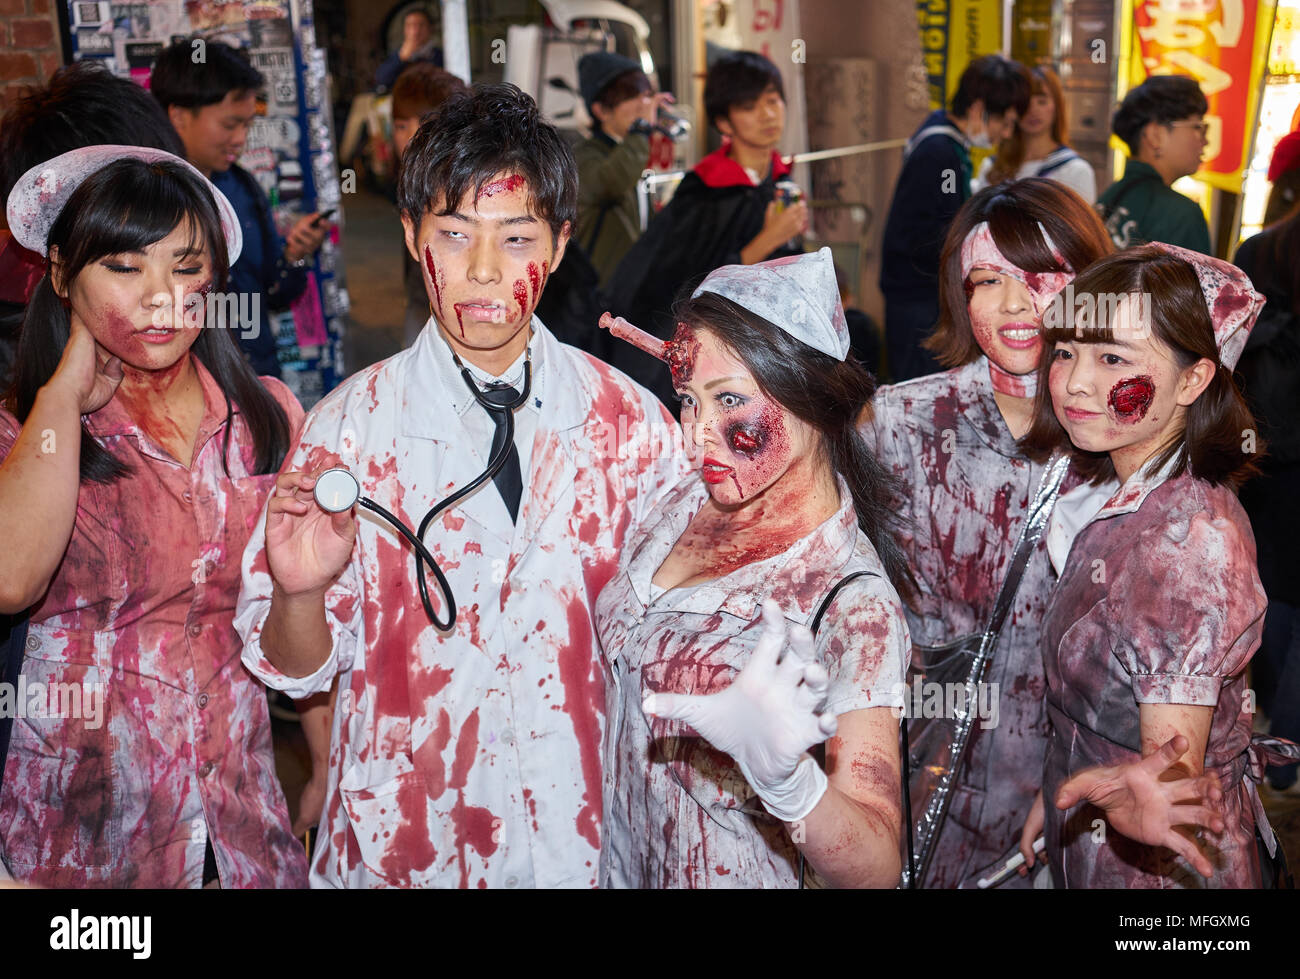 f18377644a14d Doctors and nurses zombie costumes at the Halloween celebrations in  Shibuya, Tokyo, Japan, Asia